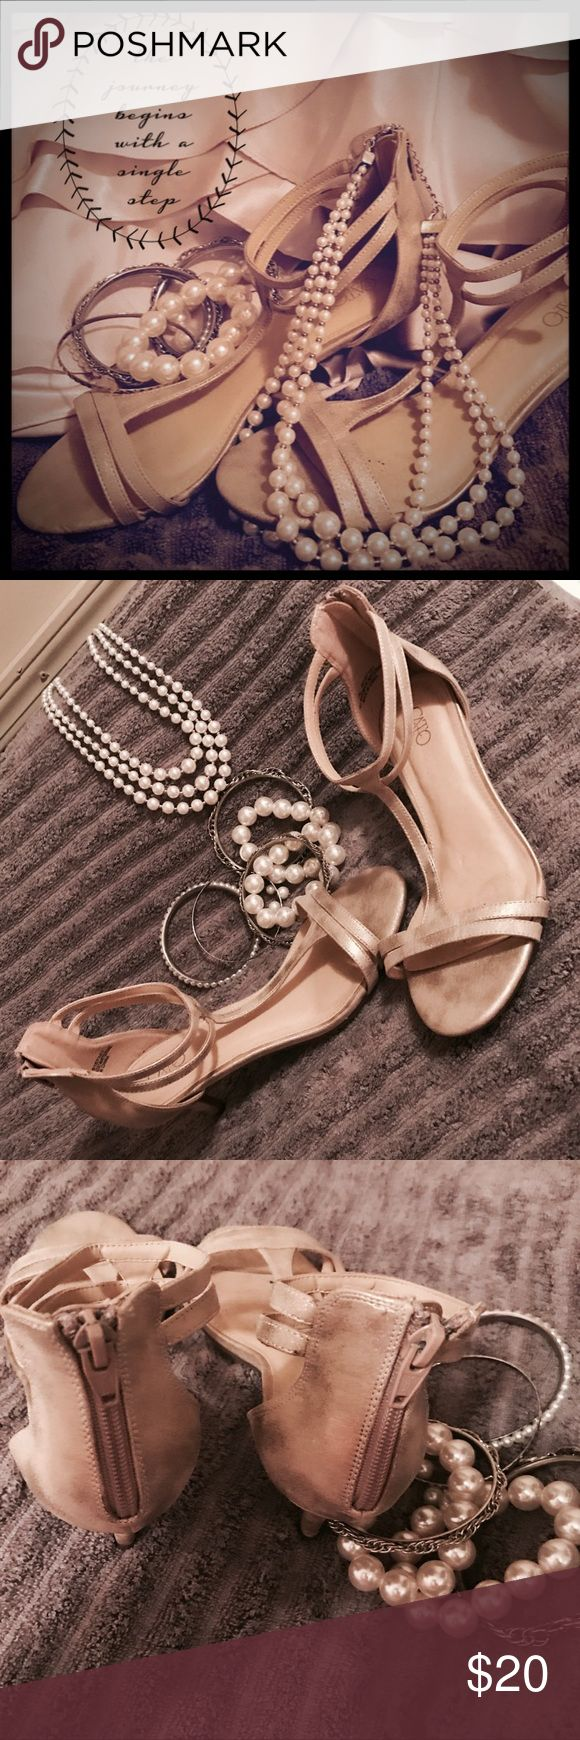 Women's' Champagne Colored Heels by CATO Women's' Champagne Colored Heels by CATO. * The shoes are marked 7. I wear a size 8.  I am marking these a size 8.* Worn one time. Vey nice shoes.  Contact me with any questions.             🌟🌸Thanks for l👀king!🌸🌟 cato Shoes Heels